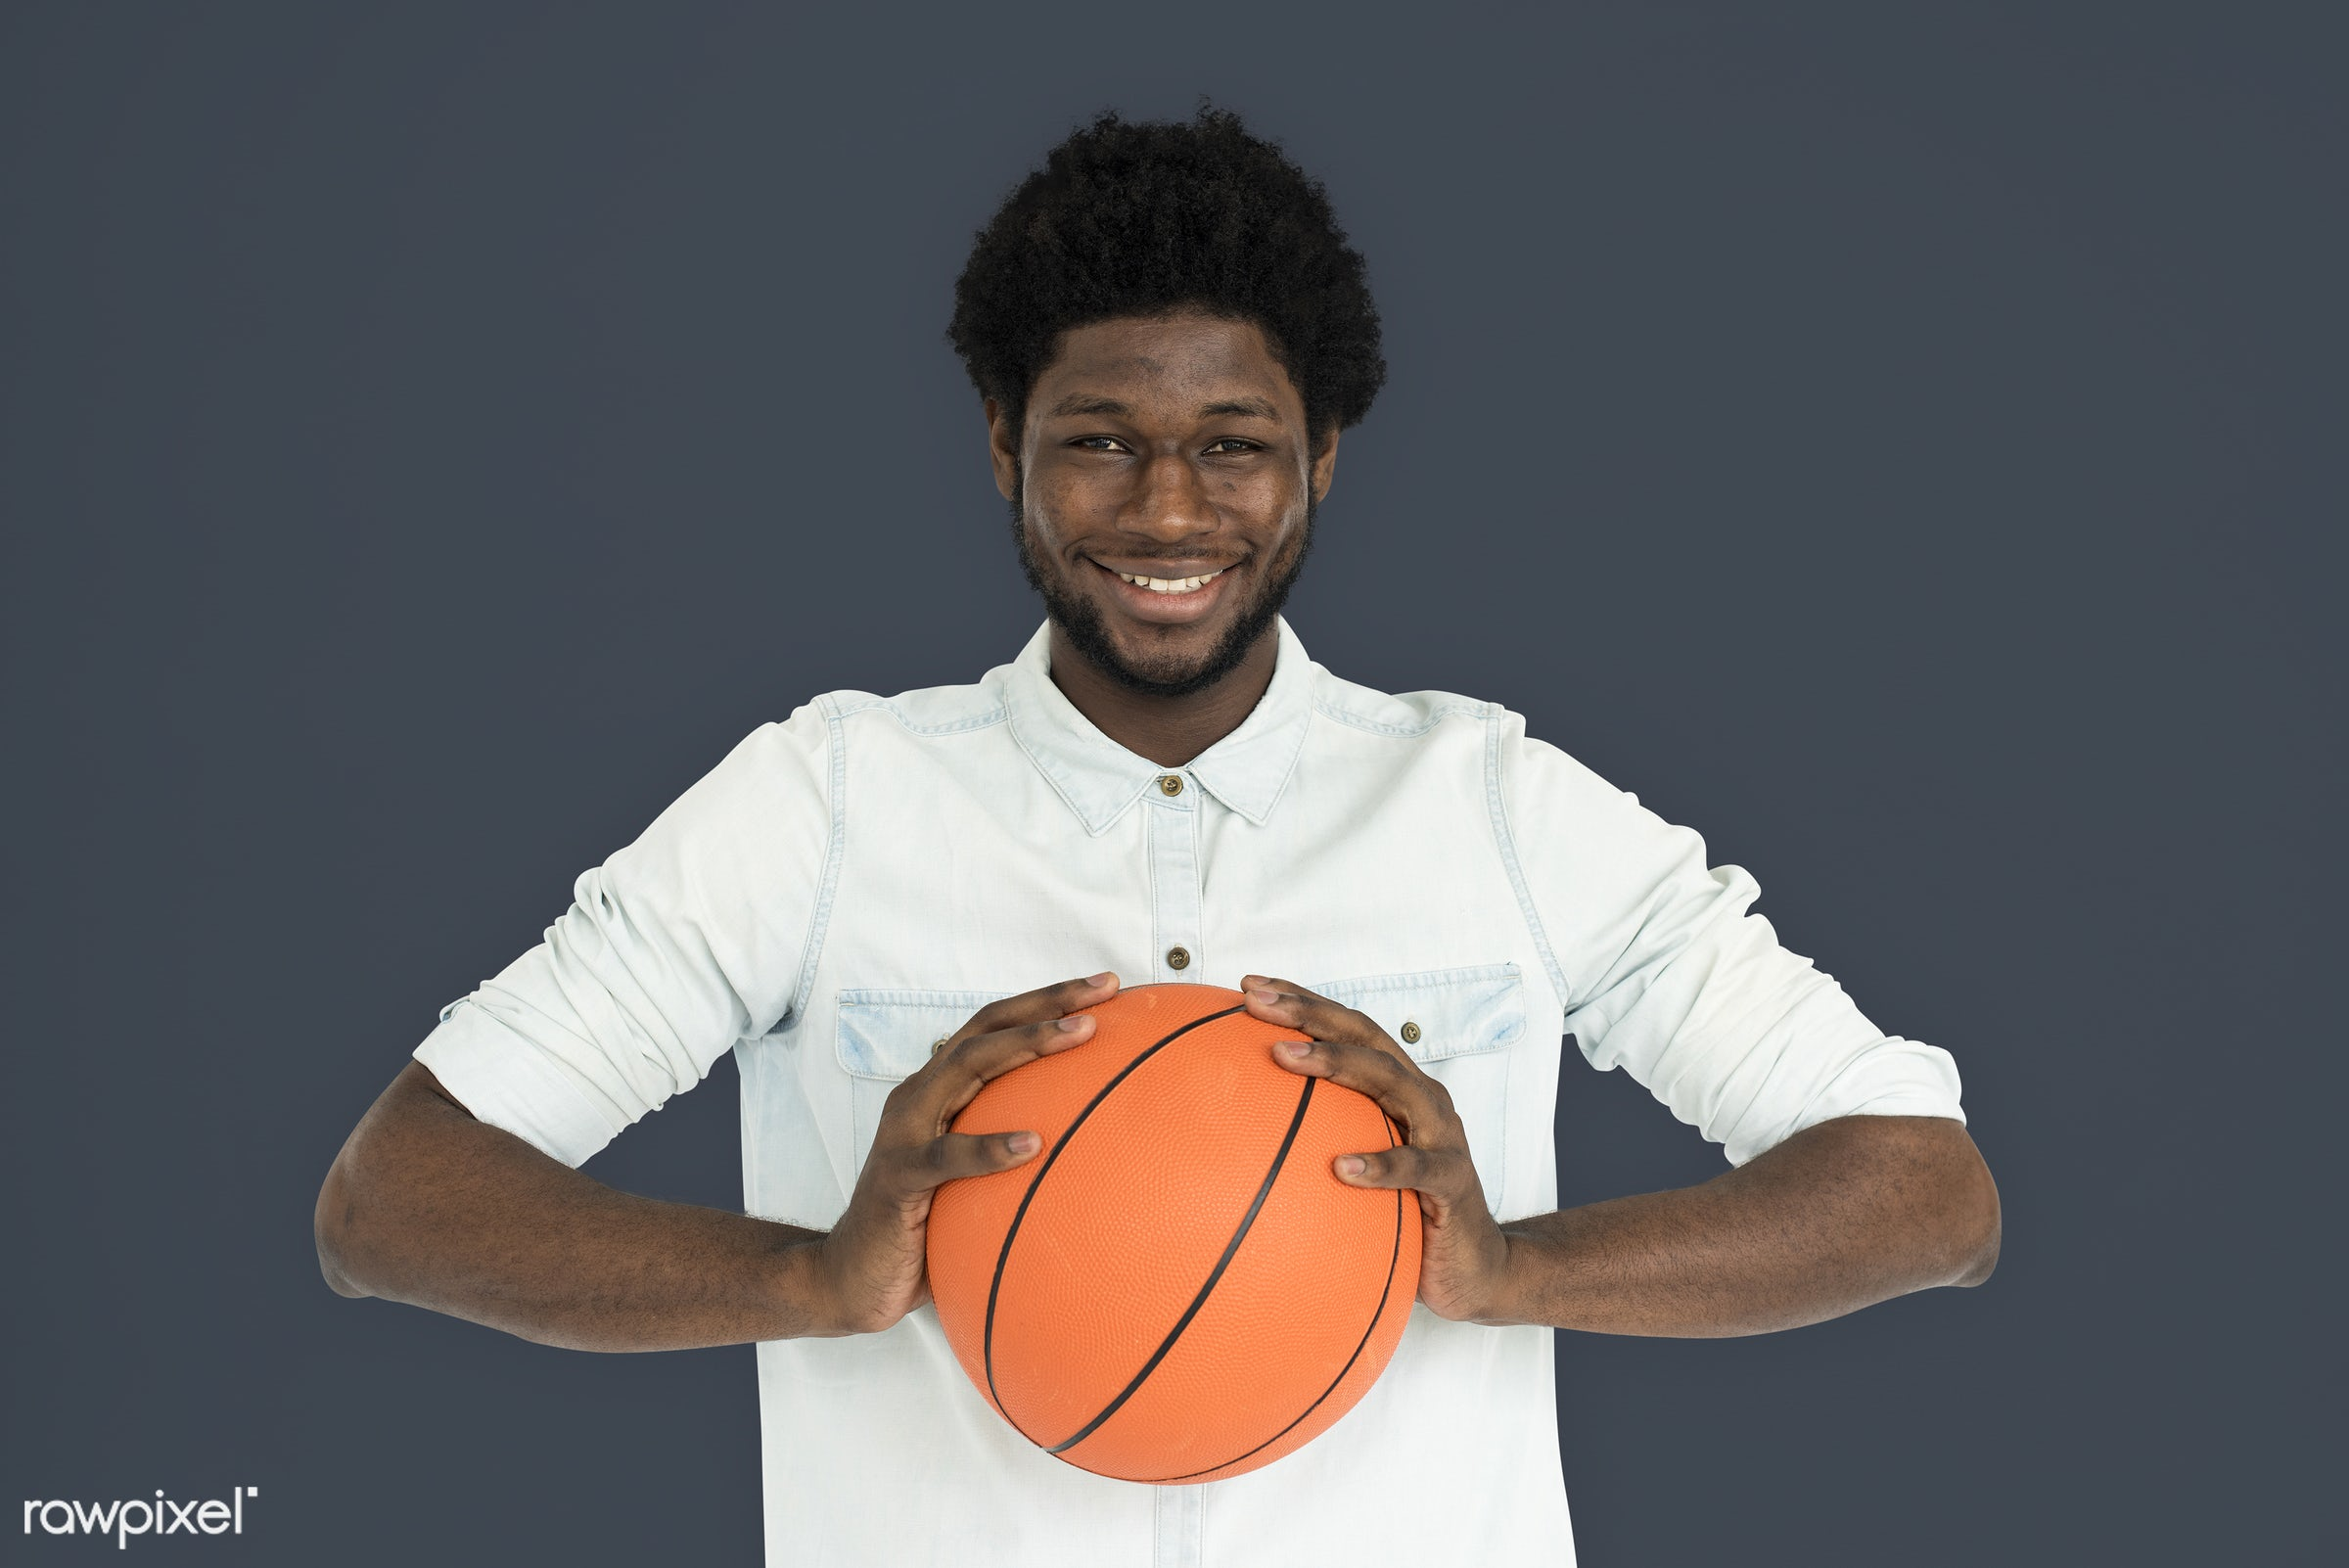 studio, basketball, expression, earth tone, person, holding, people, lifestyle, cheerful, smiling, isolated, laugh, hobby,...